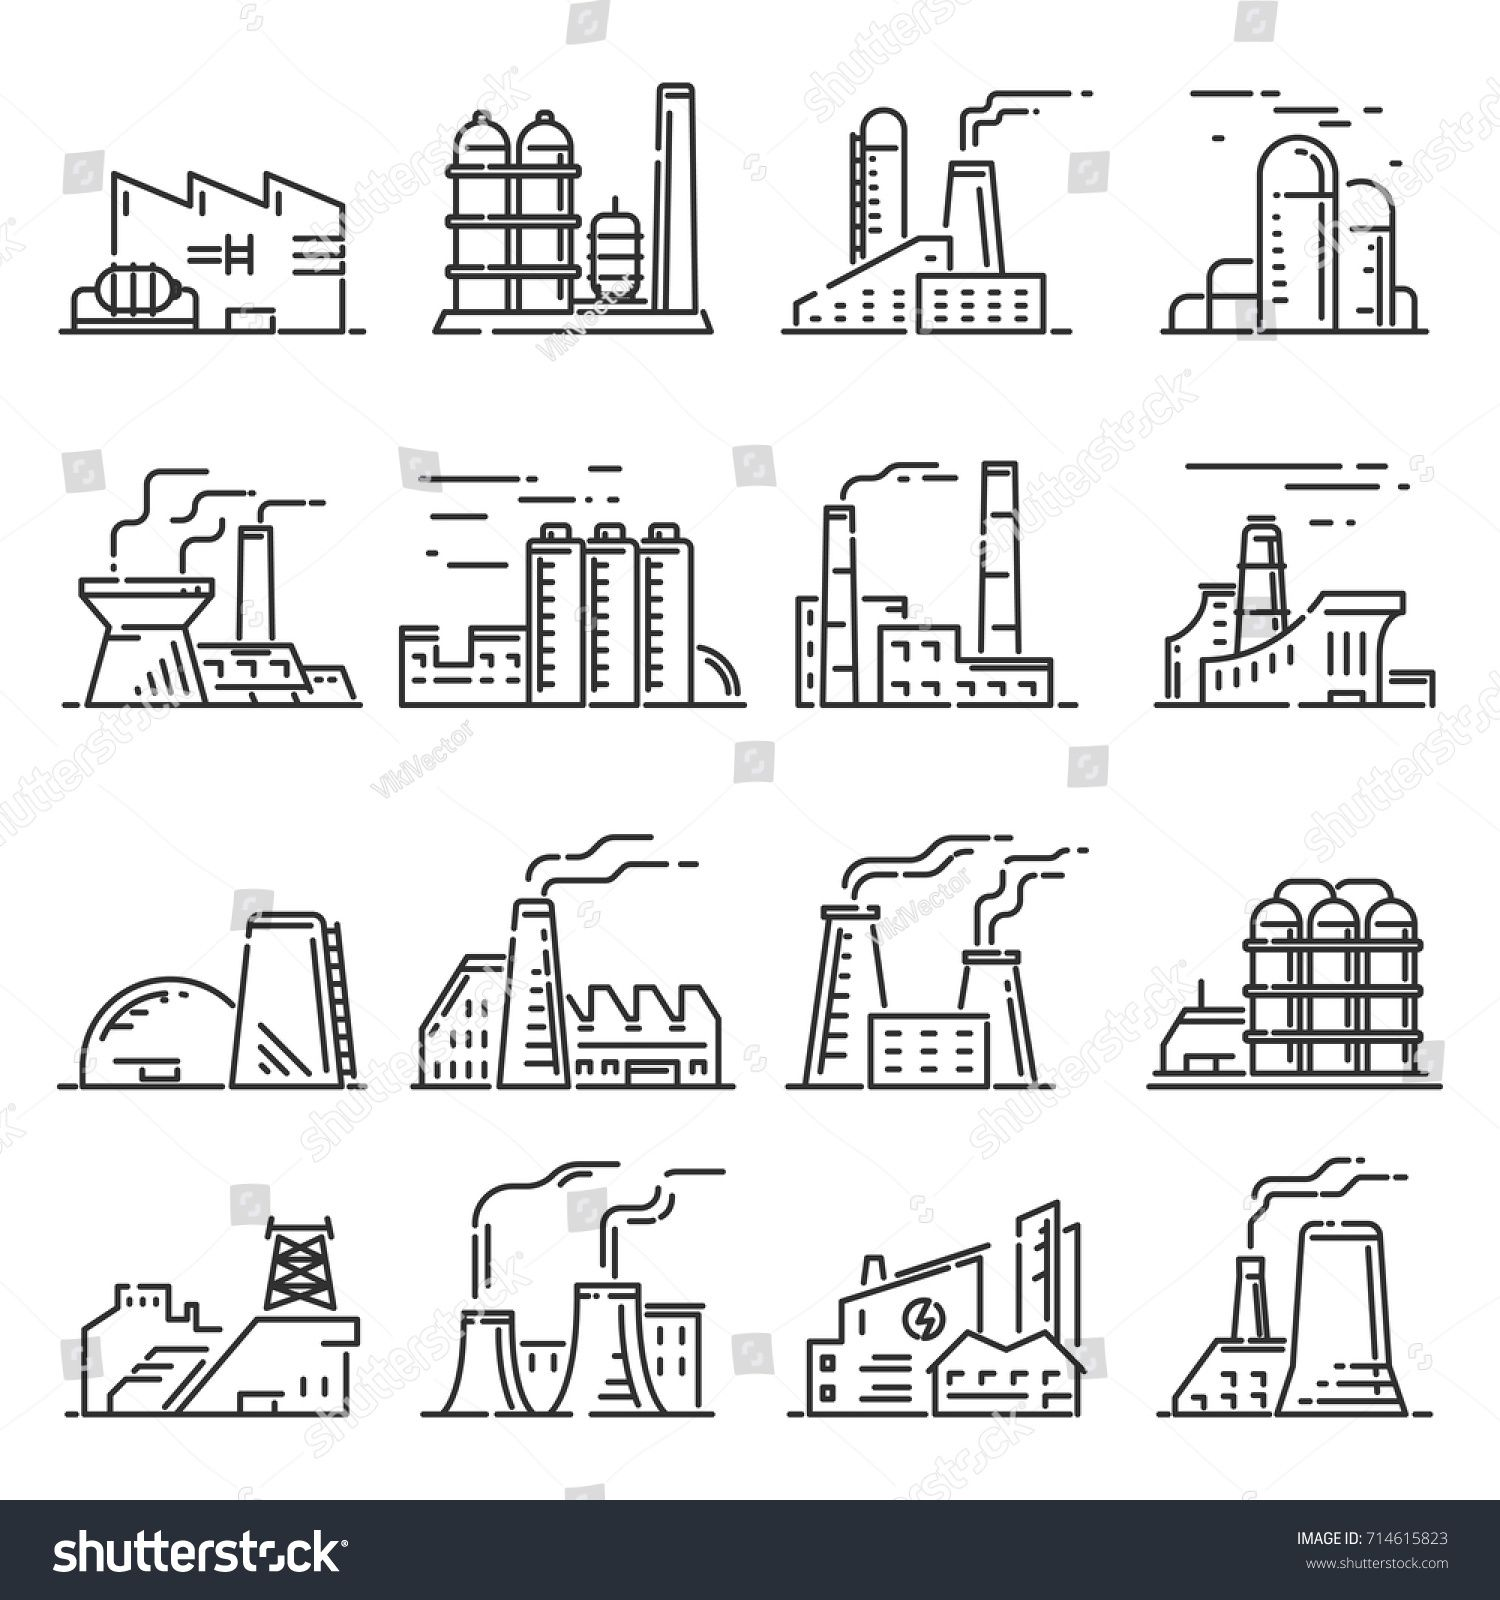 Factory Building Outline Set Steel Construction Of Metal Industrial And Commercial Architecture Factory Icon Building Icon Factory Icon Factory Architecture